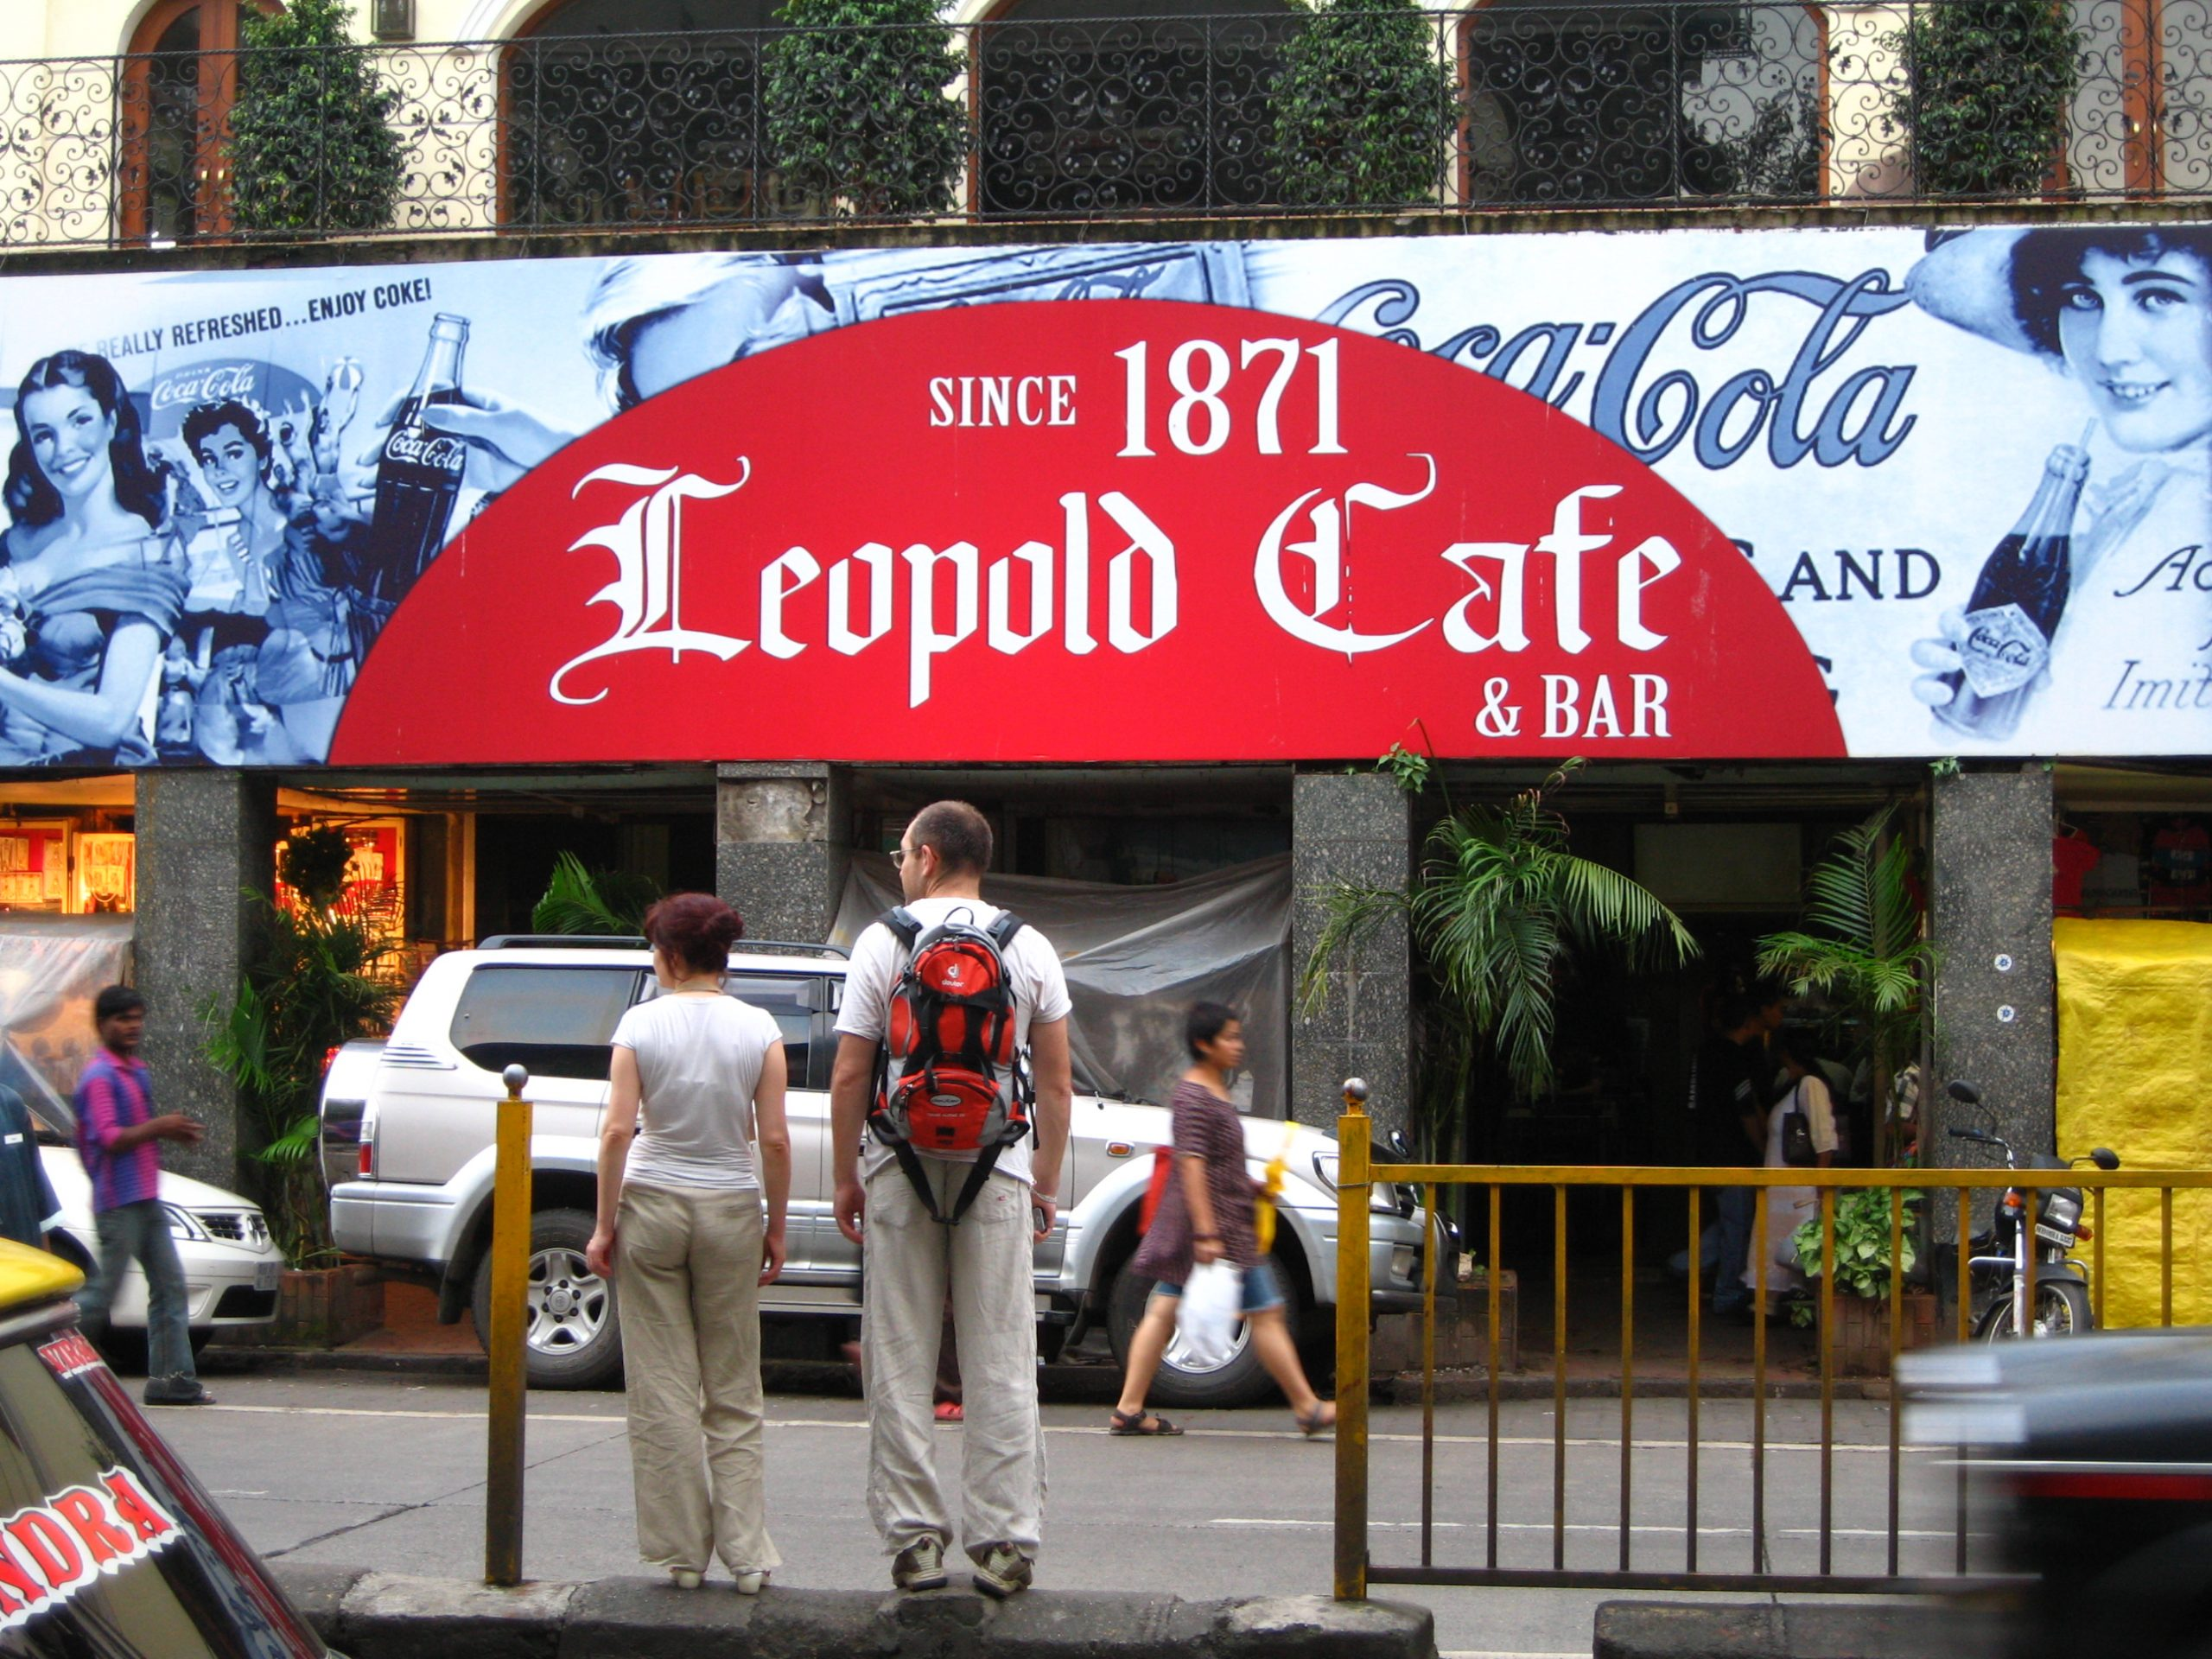 Best Place to Visit Near By Veermata Jijabai Bhosale Udyan and Zoo - Leopold Cafe